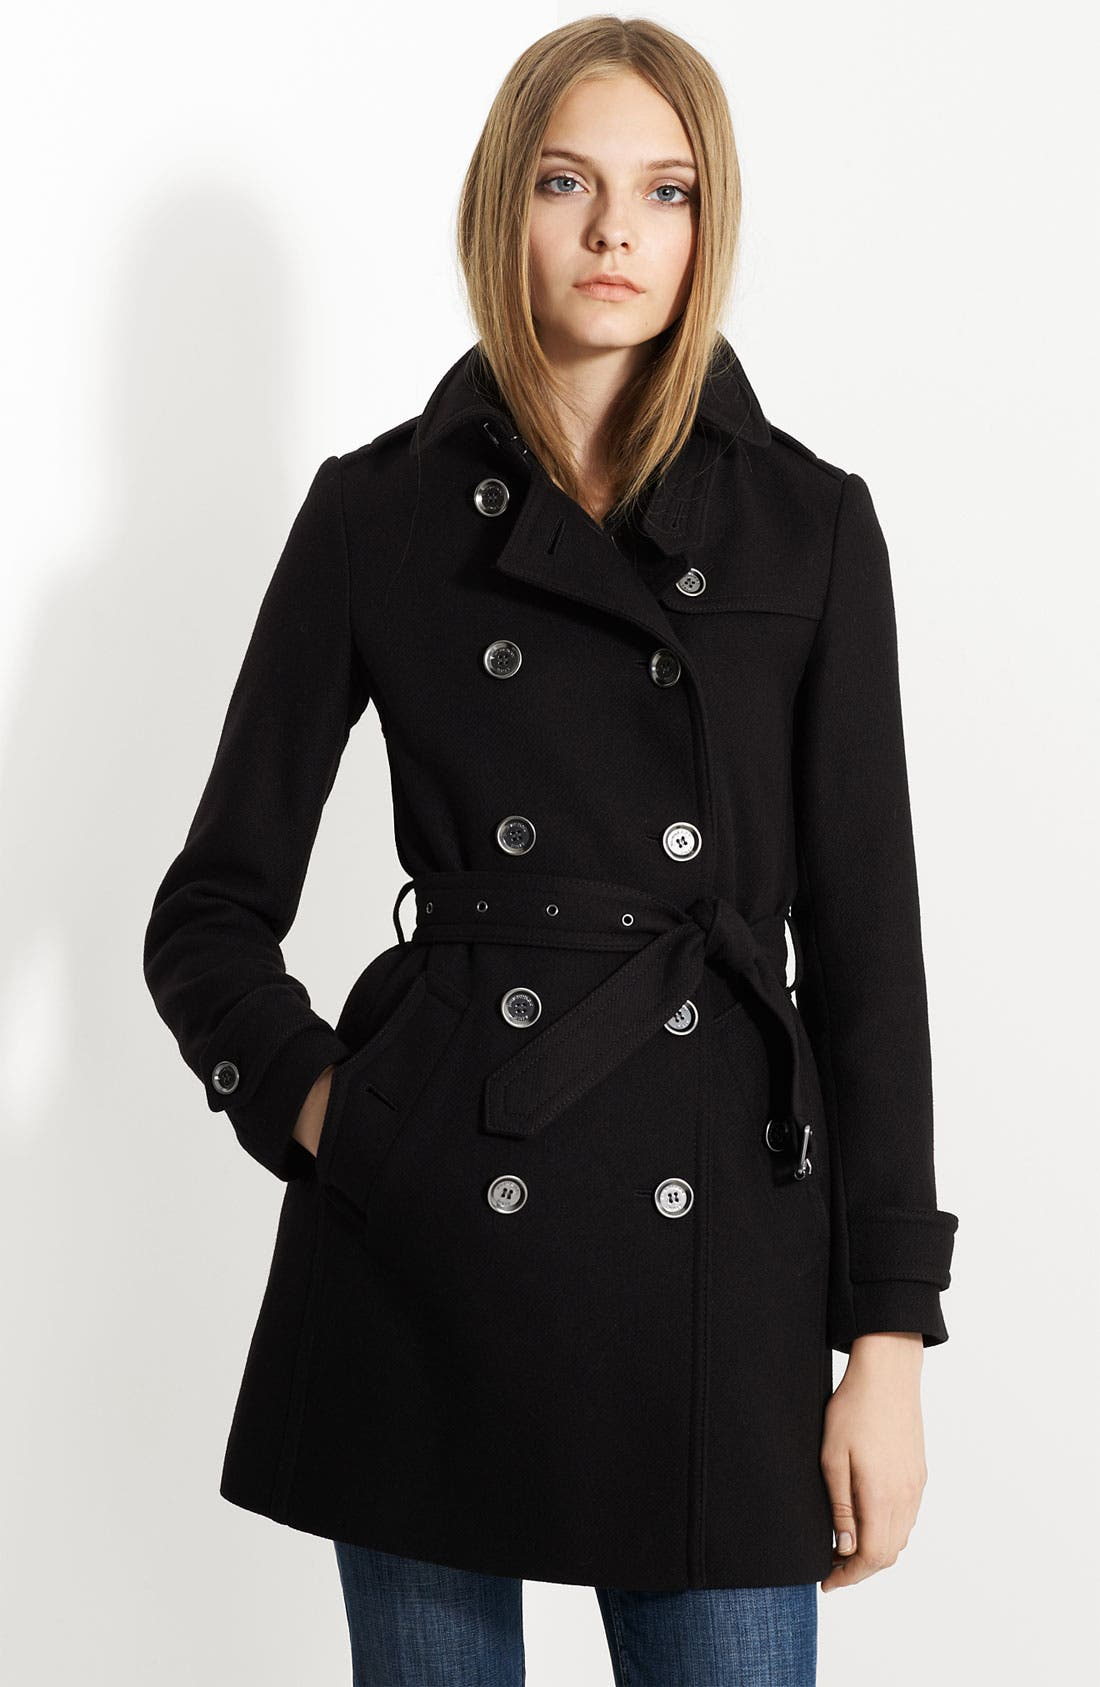 Alternate Image 1 Selected - Burberry Brit 'Balmoral' Wool Blend Trench Coat